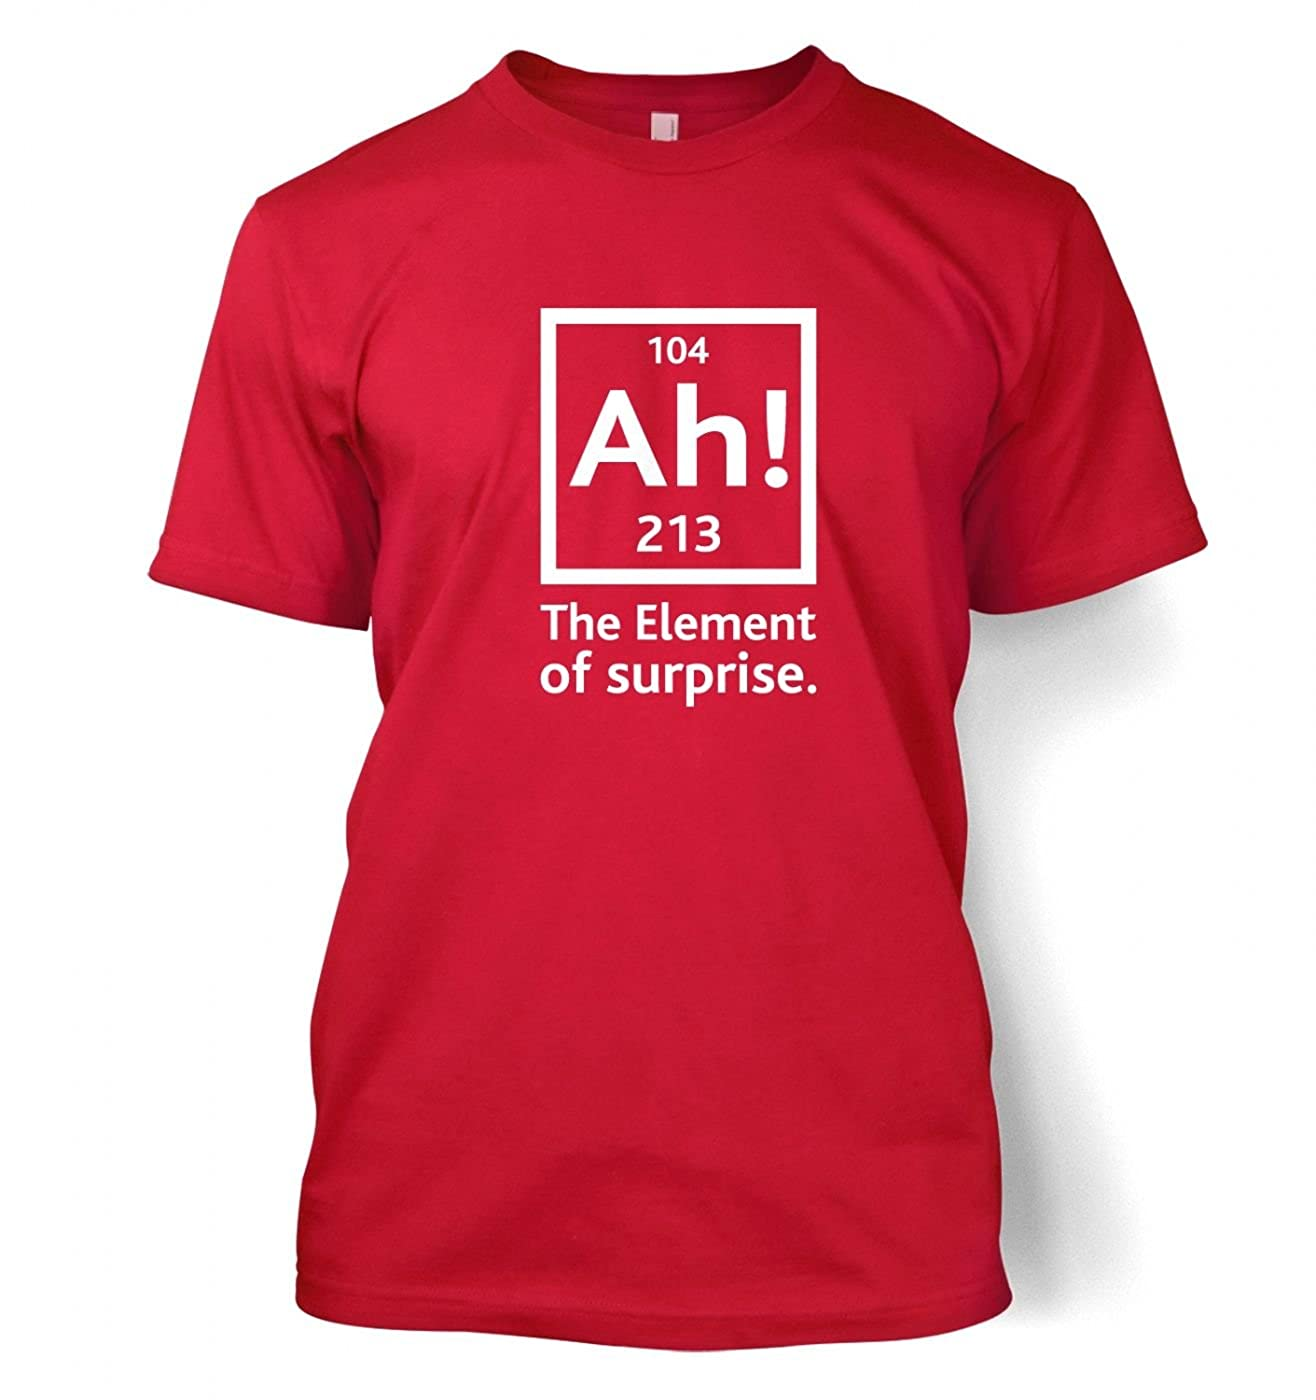 2633dd93a Amazon.com: Ah! The Element Of Surprise T-shirt - Science Geek Tshirt:  Clothing